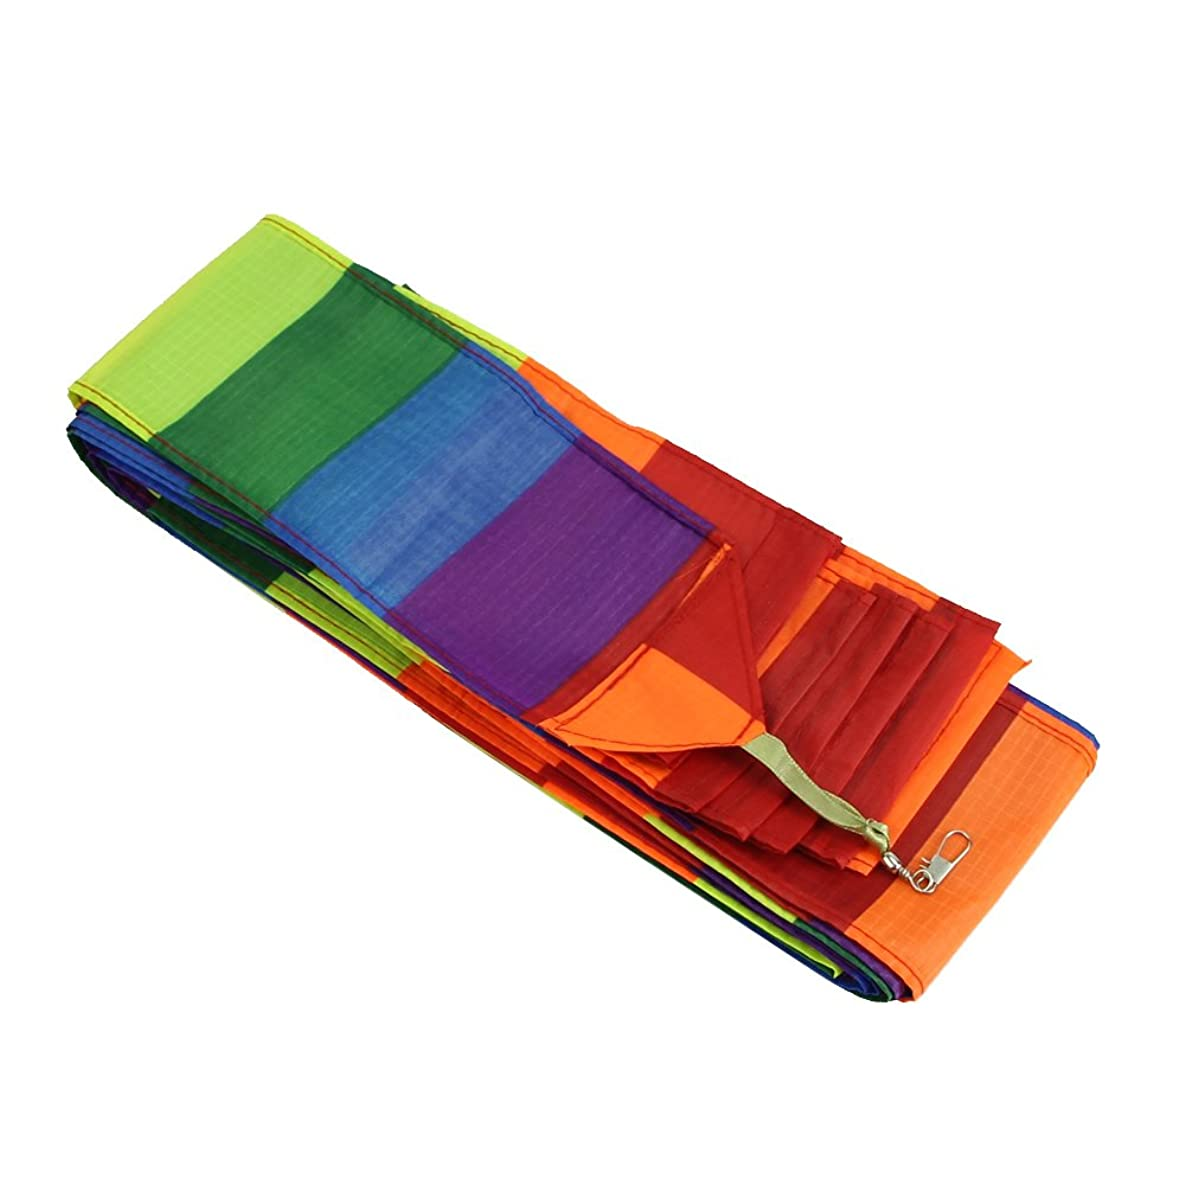 Wrisky Sale 10M Super Nylon Rainbow Kite Tail Line Sports Kite Accessory New